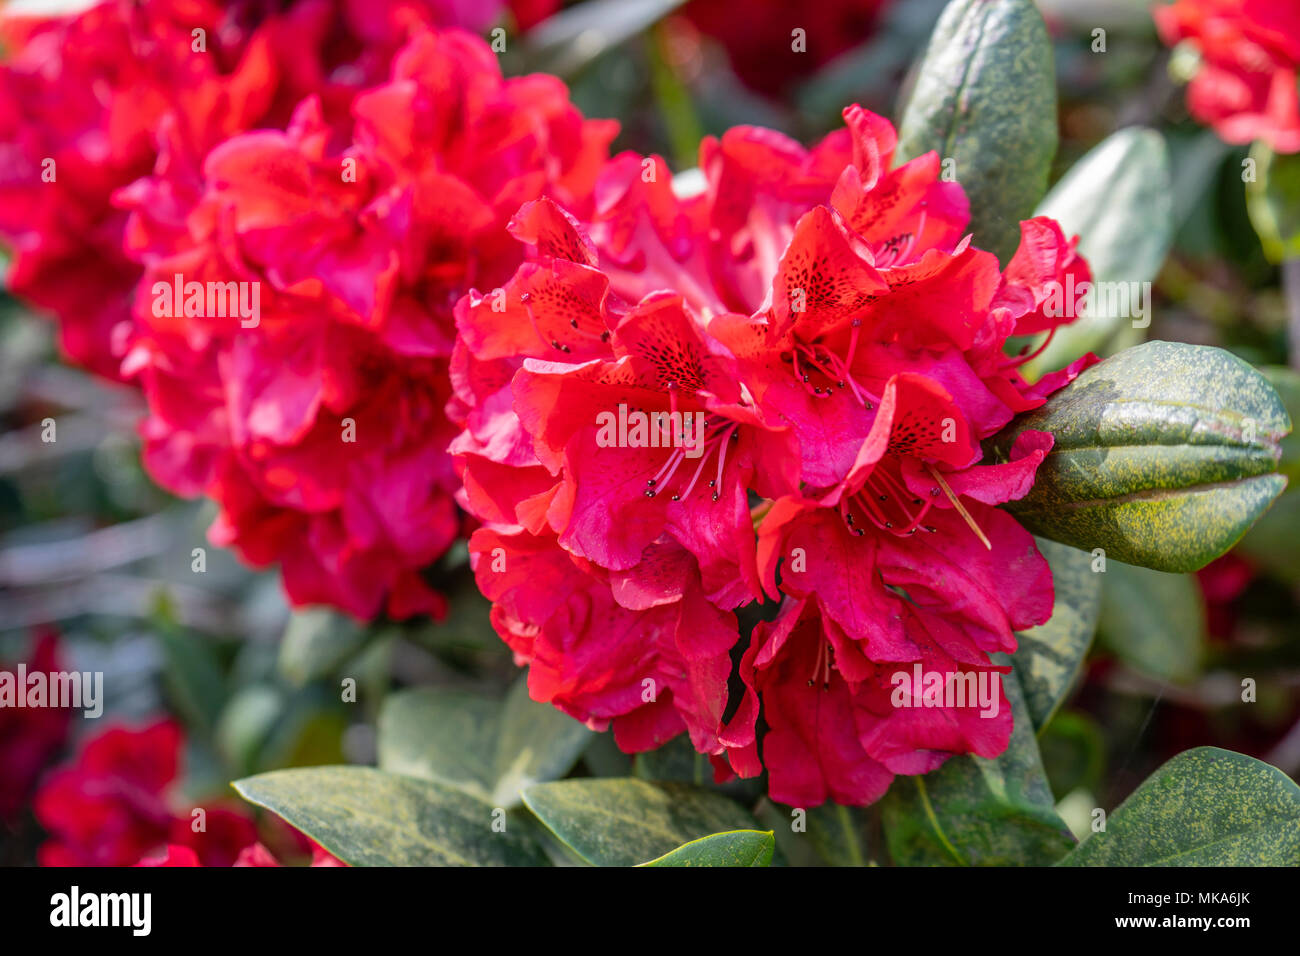 """Close up of the red flower trusses of a 'Grace Seabrook"""" Rhododendron plant in a garden in Southern England during May/ spring, UK Stock Photo"""